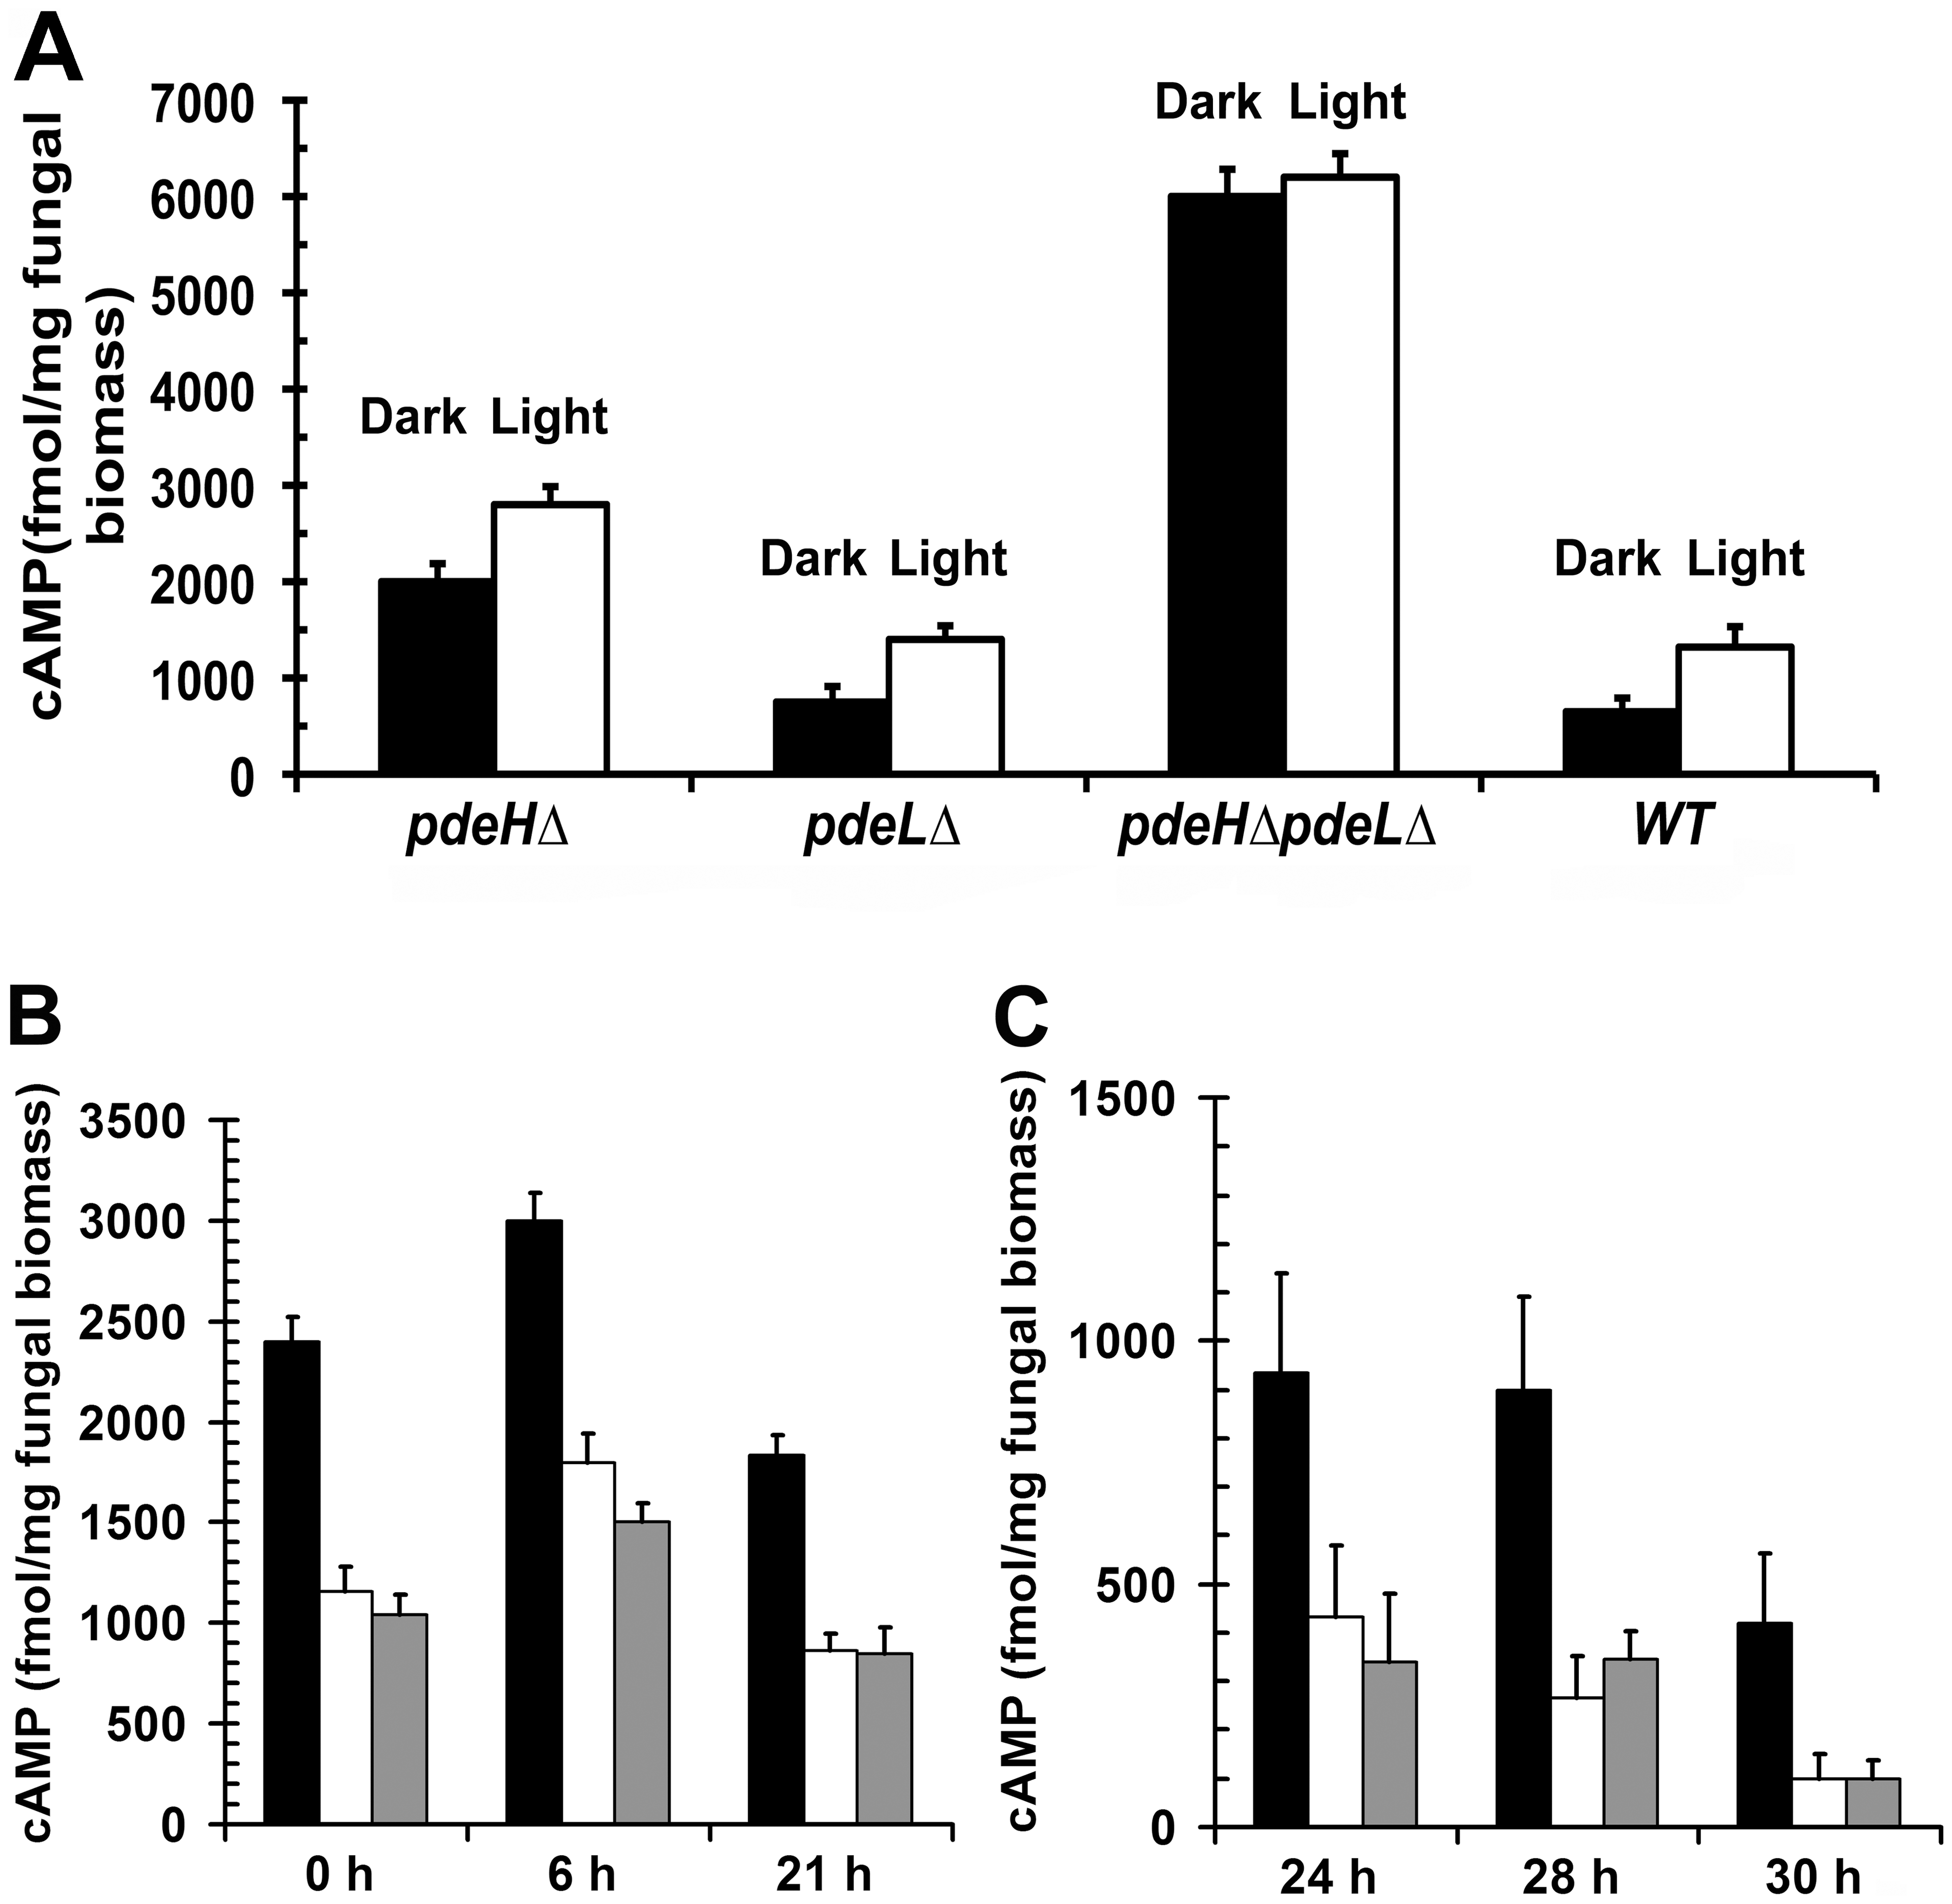 PdeH regulates the intracellular cAMP levels during growth and development in <i>M. oryzae</i>.